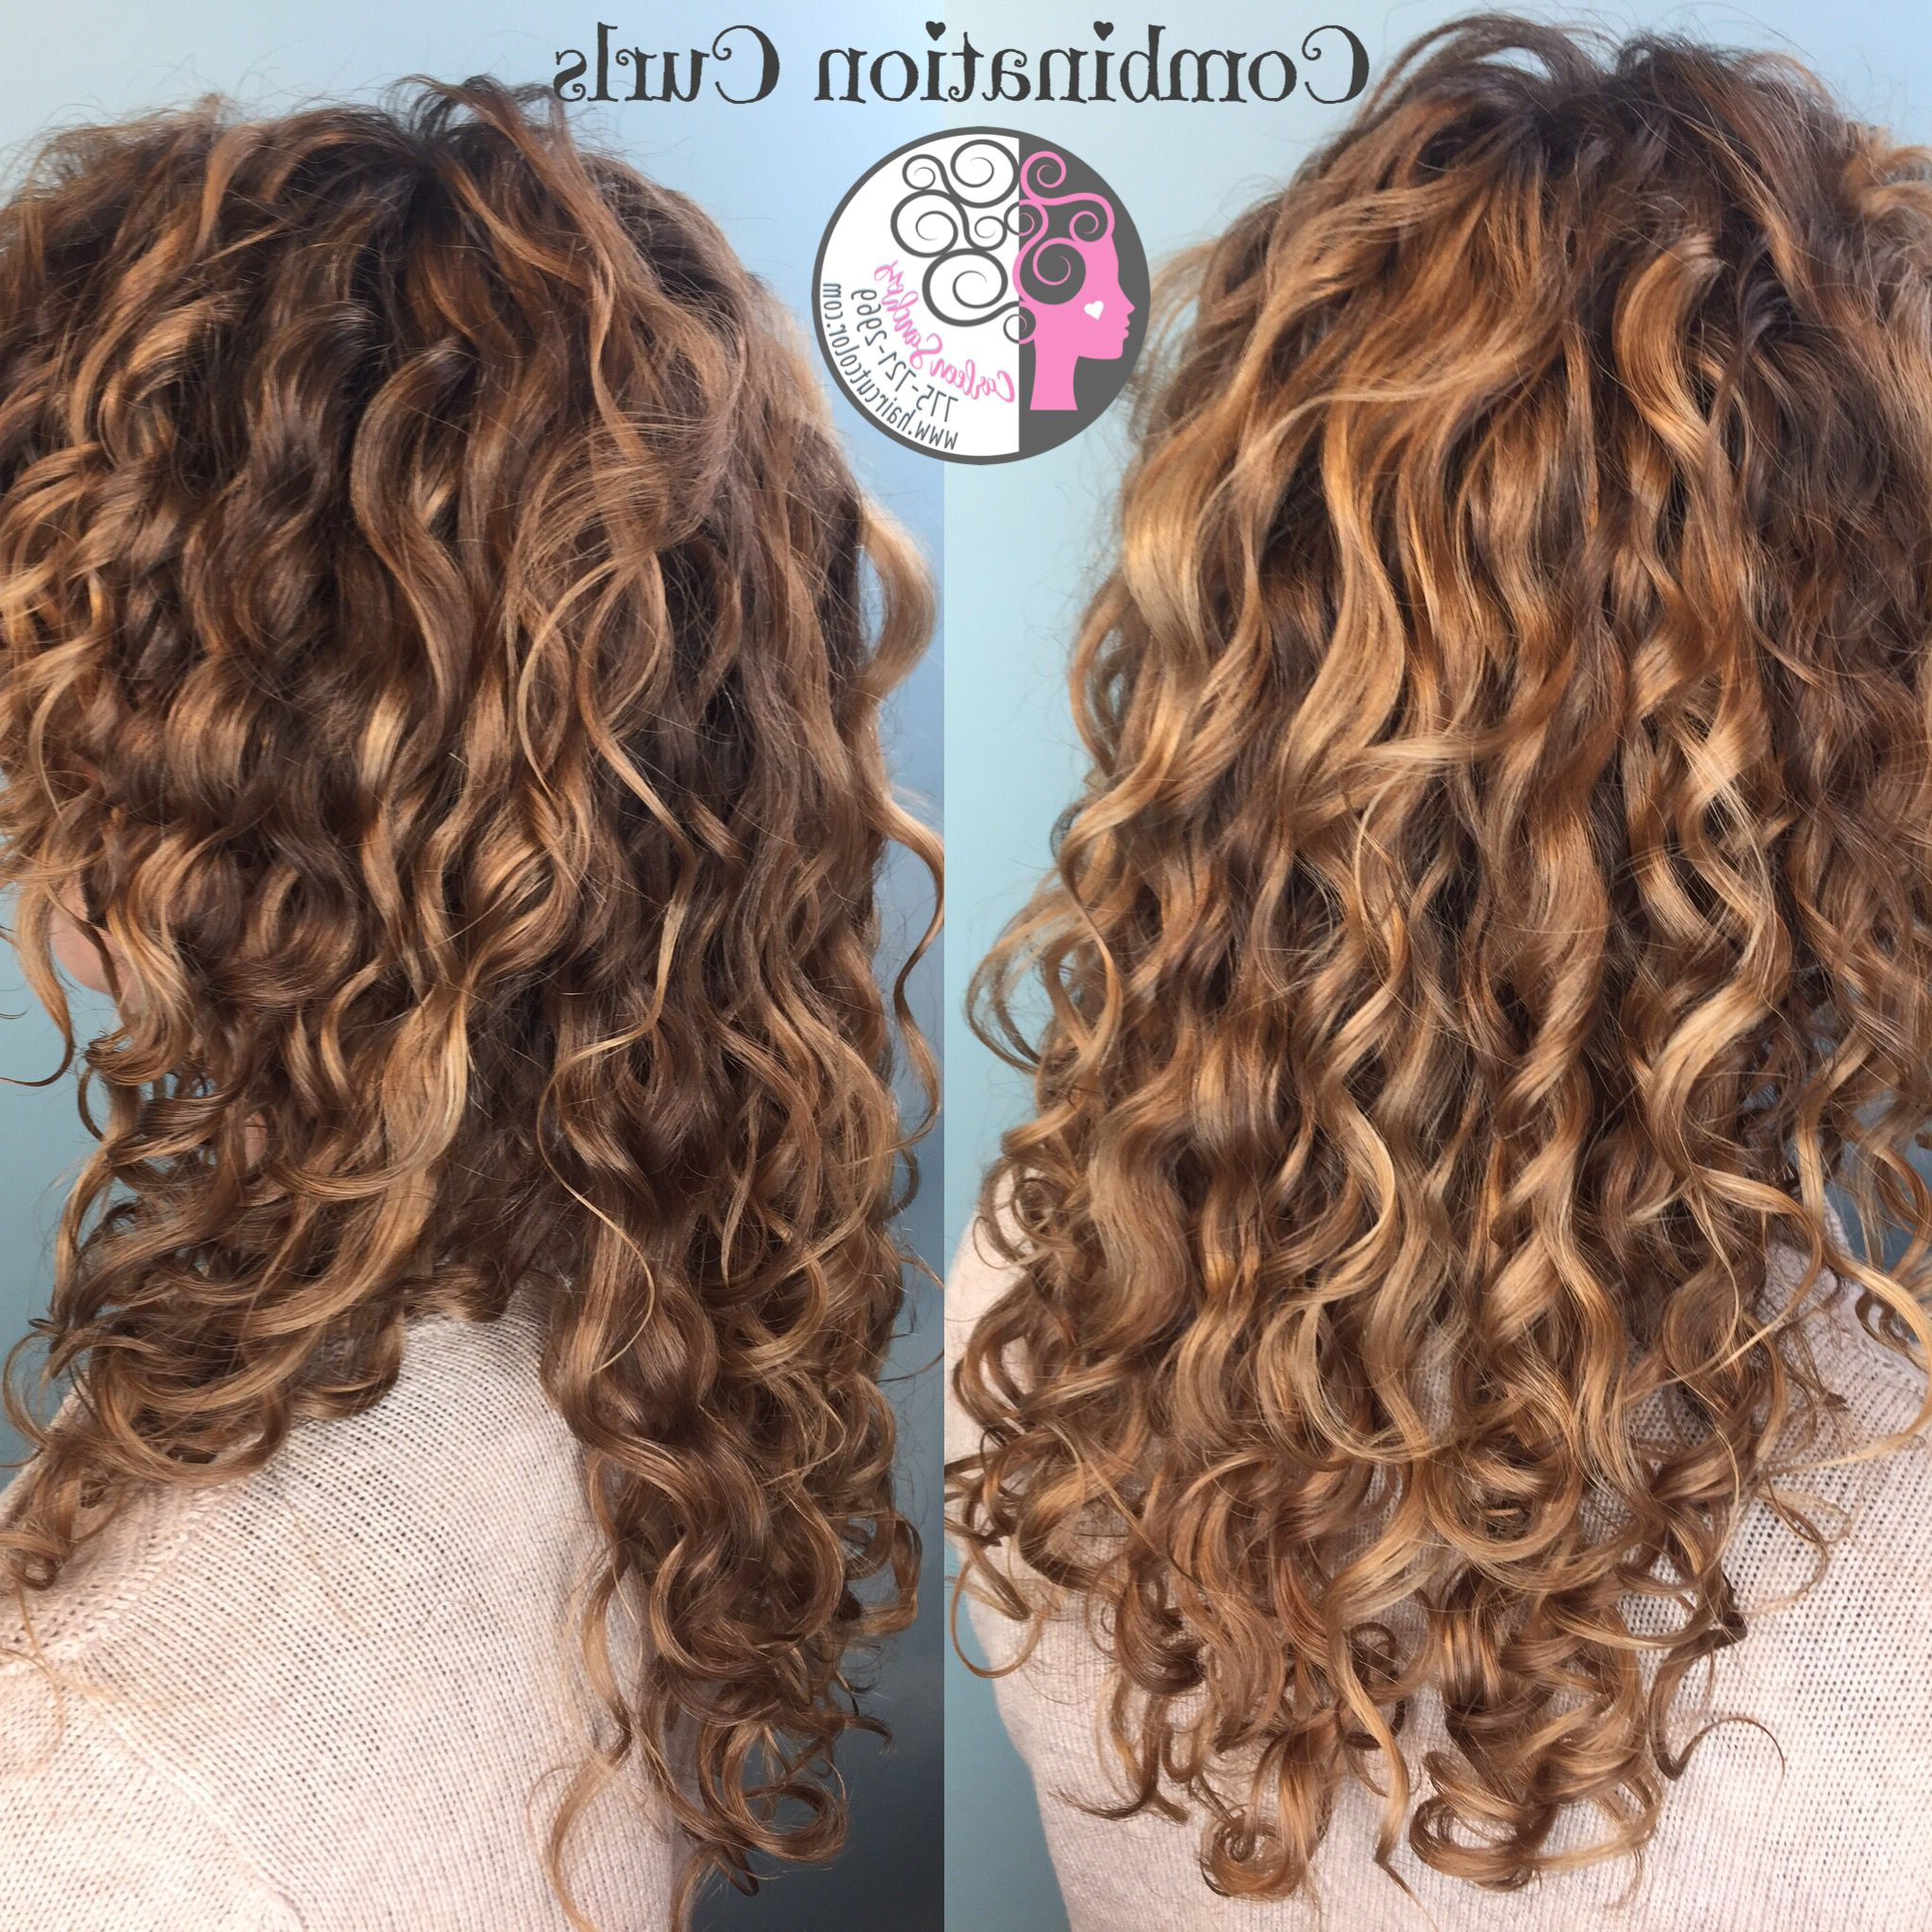 Pintura And Balayage Highlights And Custom Naturally Curly Cut With Regard To Golden Brown Thick Curly Bob Hairstyles (View 20 of 20)